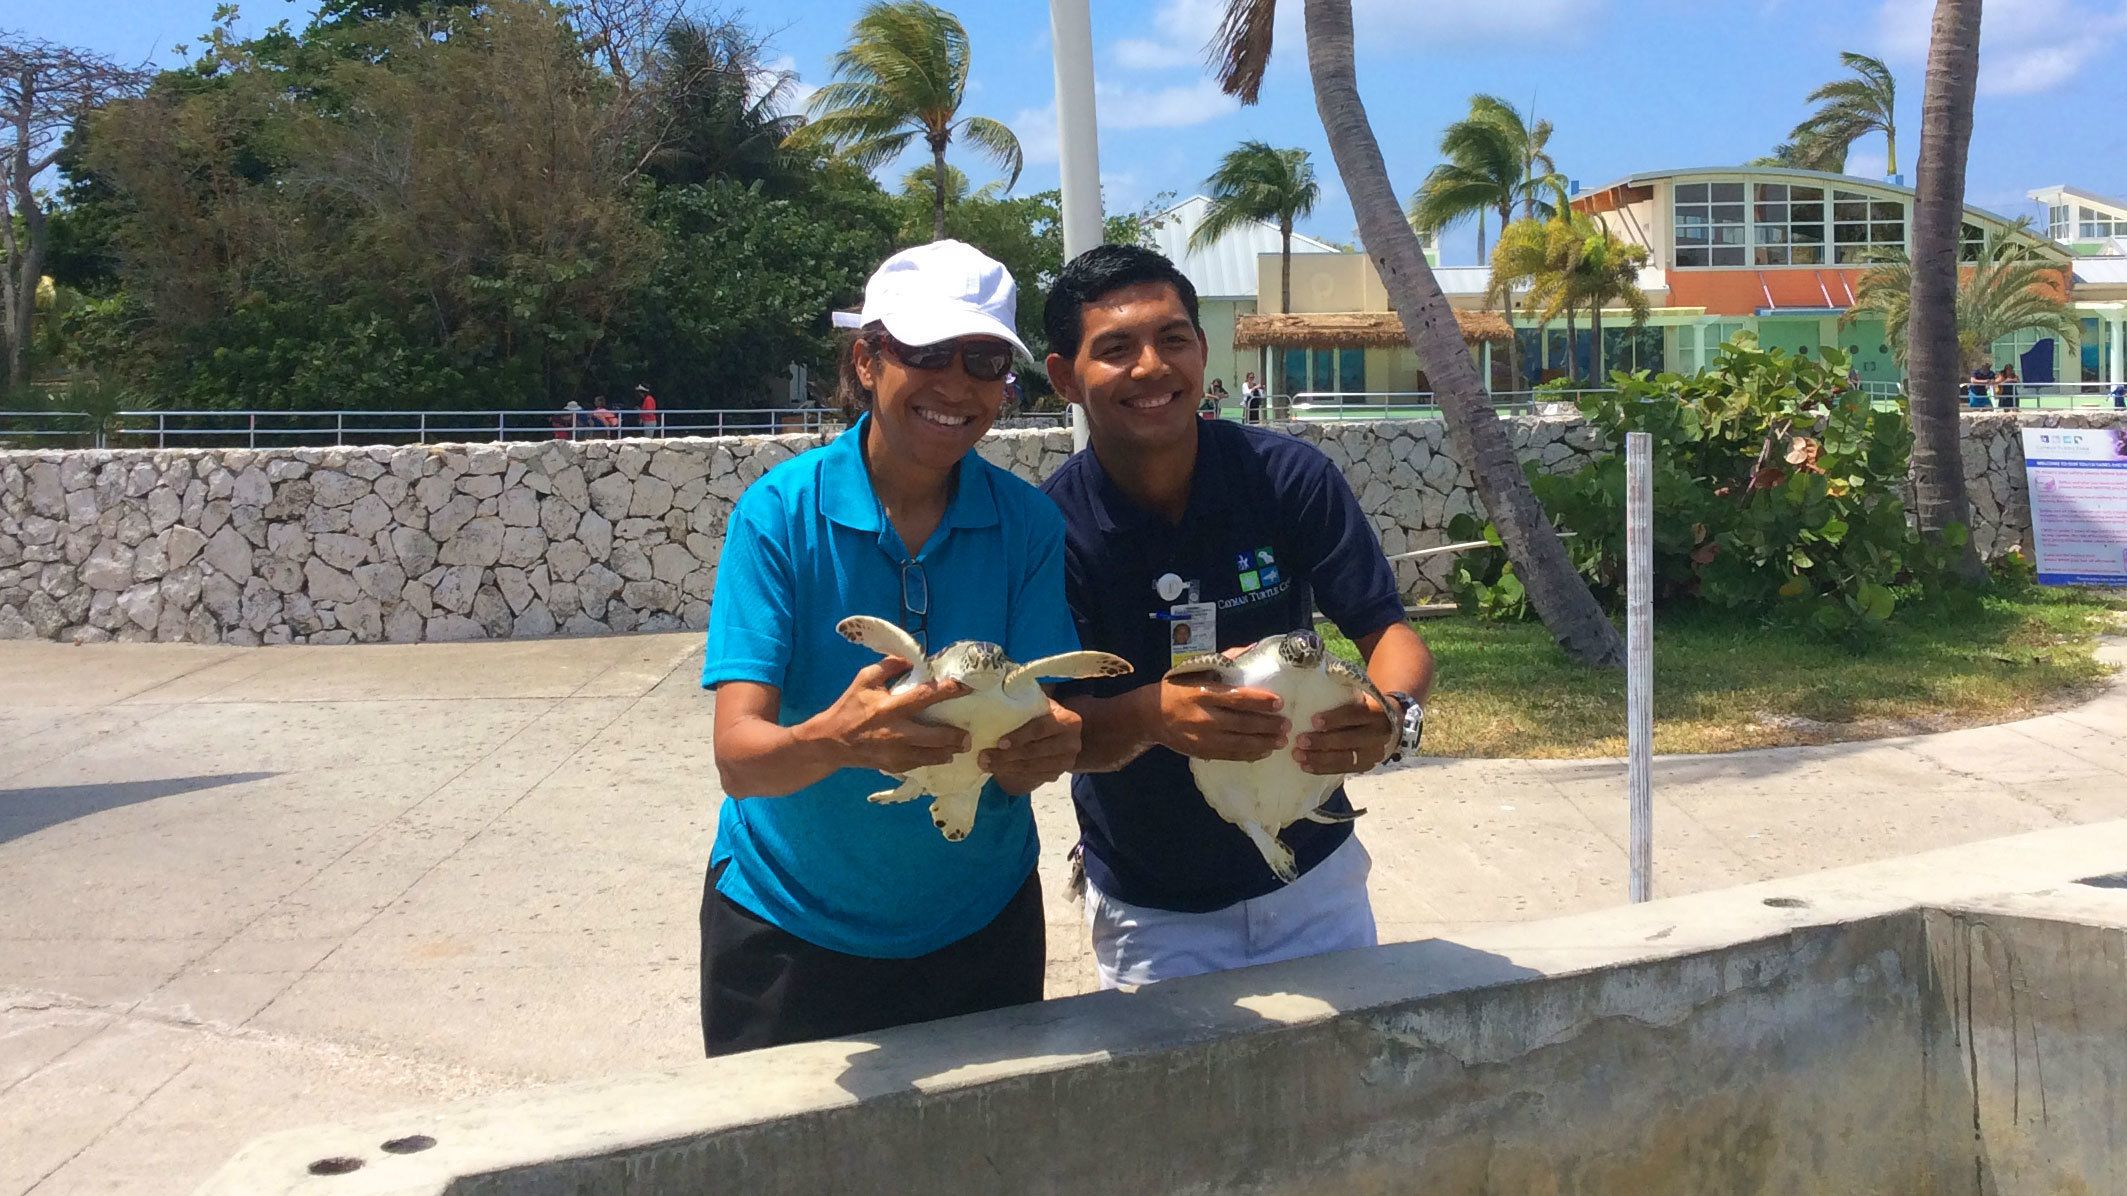 Two zookeepers at the Cayman Turtle Center